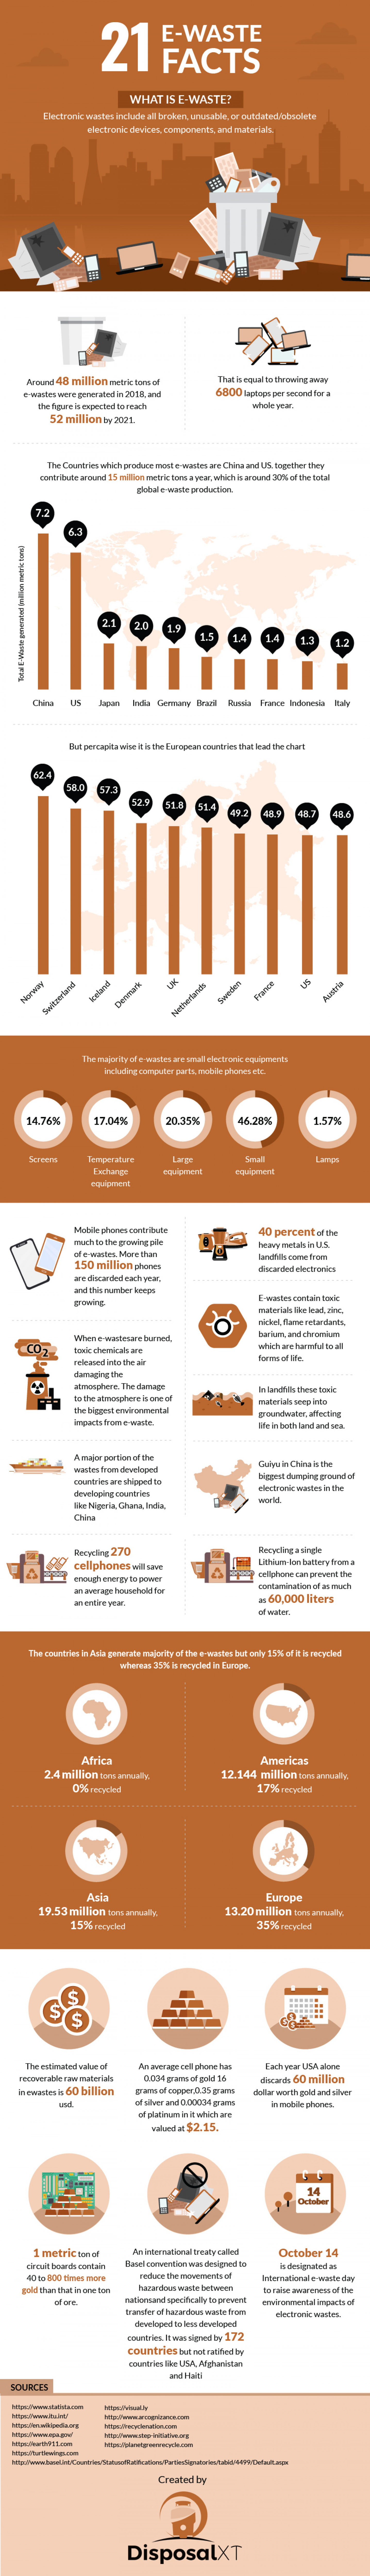 21 E-Waste Facts Infographic